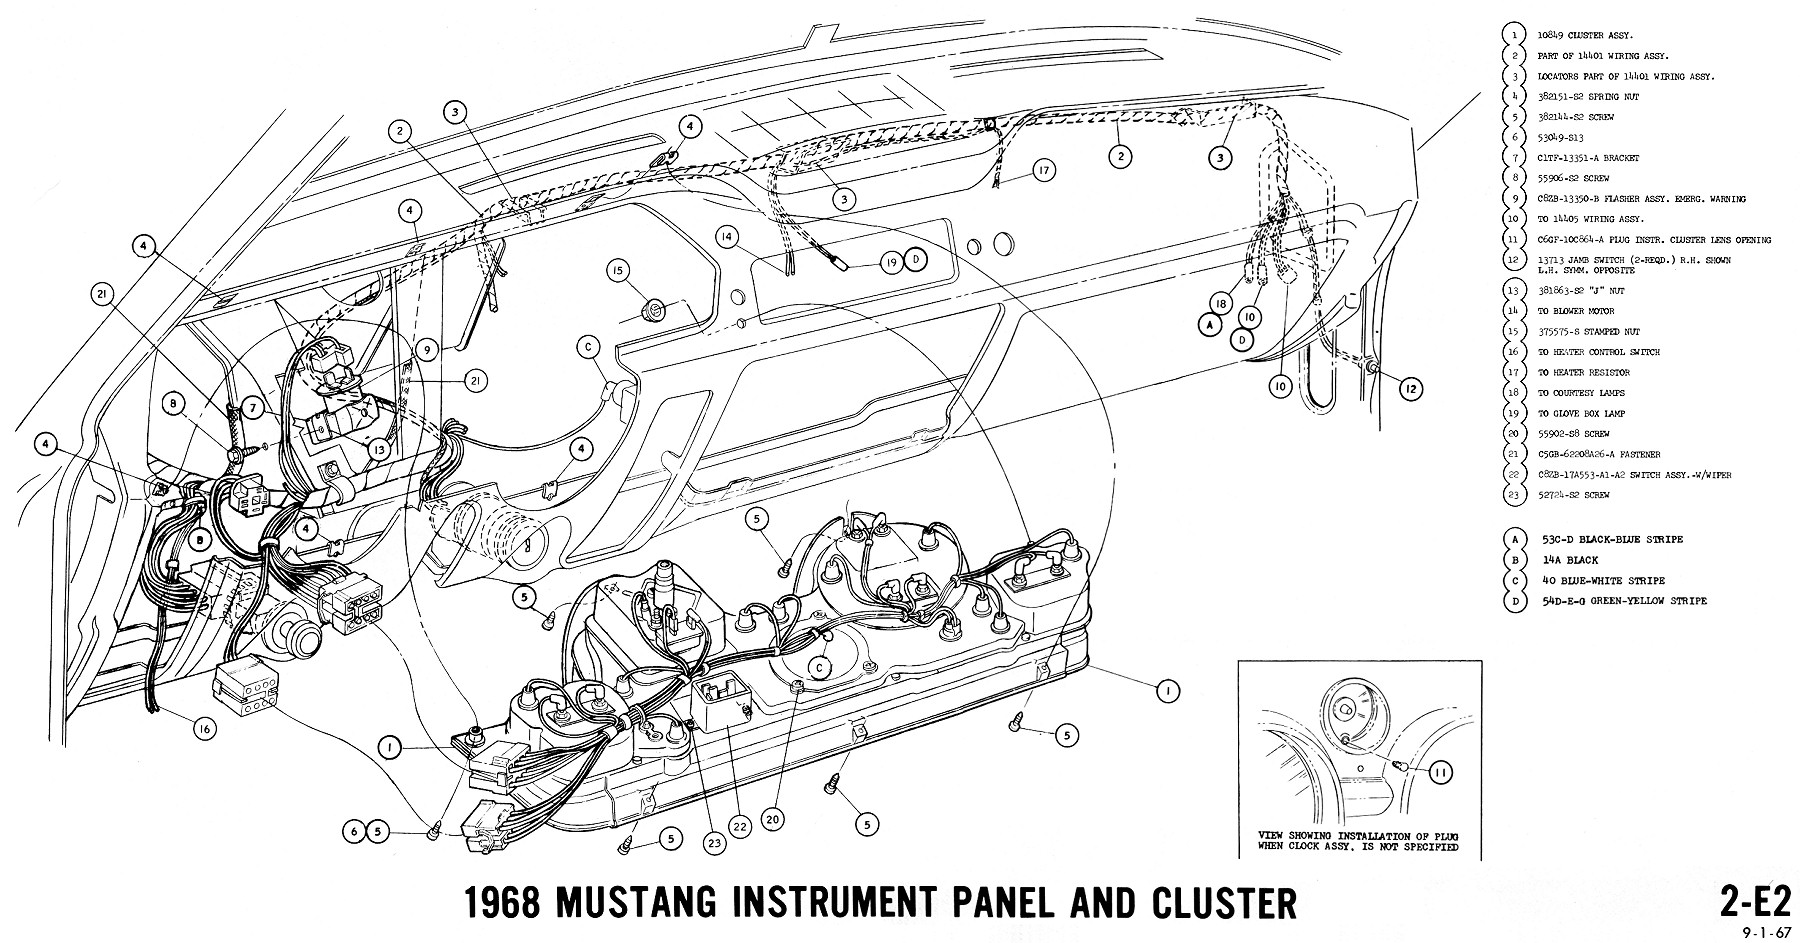 1968 Mustang Wiring Diagrams And Vacuum Schematics Average Joe 65 Chevy Truck Turn Signal Diagram Instruments 2